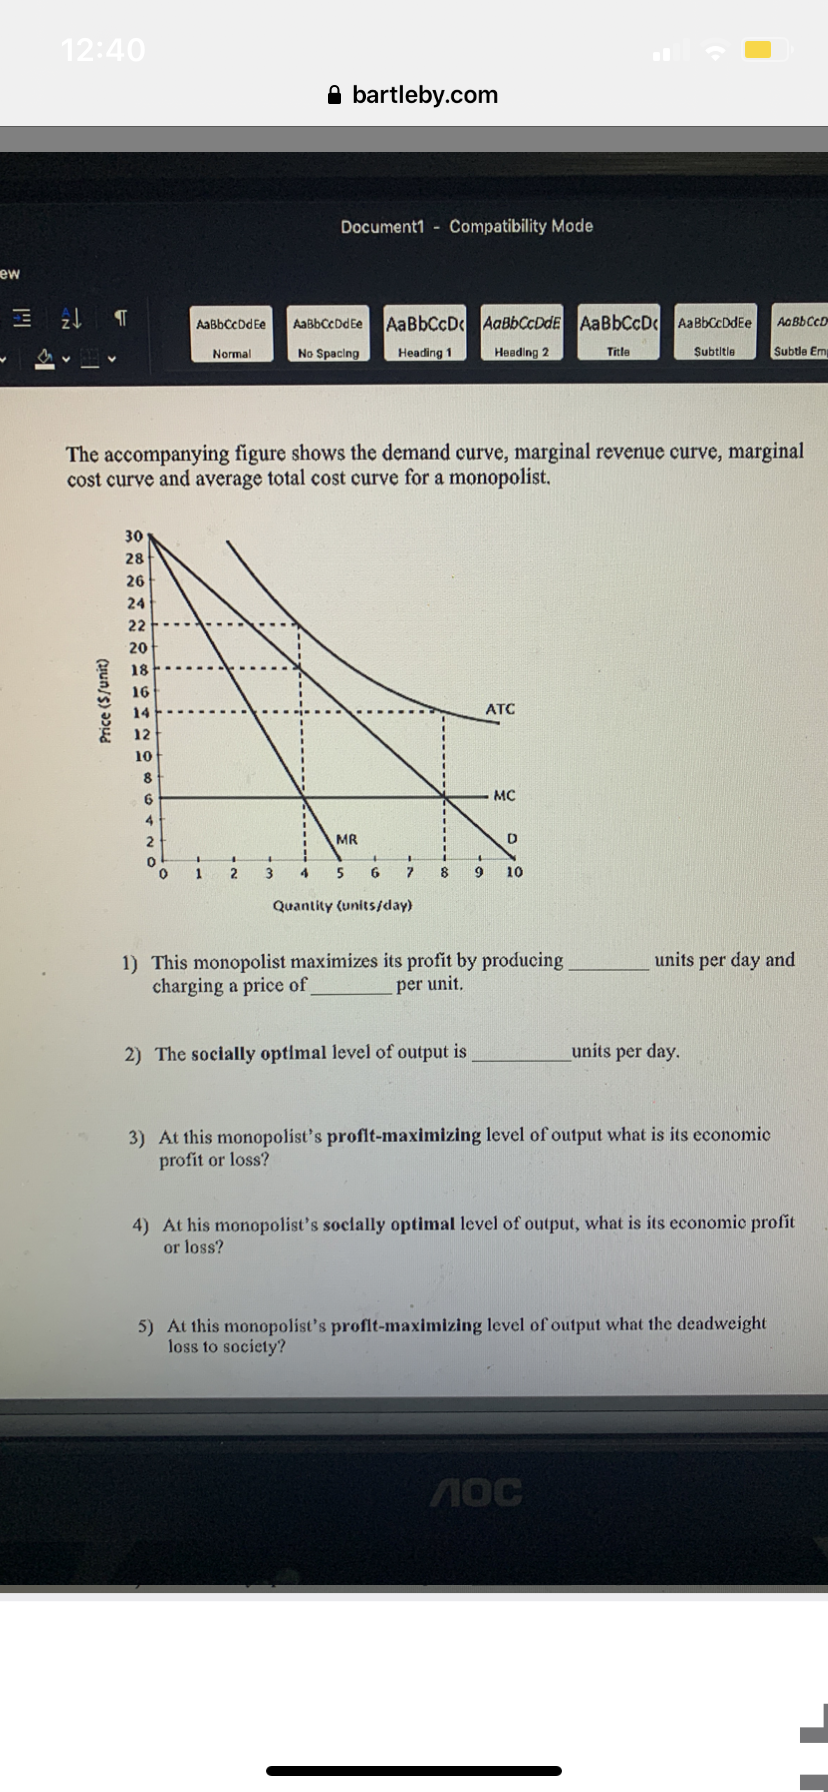 12:40 a bartleby.com Document1 Compatibility Mode ew AaBbCcD AaBbCcDdE AaBbCcD AaBbCcDdEe AaBbCcD AaBbCcDdEe AaBbCcDdEe Невding 2 No Spacing Subtle Em Title Subtitle Normal Heading 1 The accompanying figure shows the demand curve, marginal revenue curve, marginal cost curve and average total cost curve for a monopolist. 30 28 26 24 22 20 18 16 ATC 14 12 10 8 мс 4 D MR 2 9 10 6 7 1 2 4 Quantity (units/day) 1) This monopolist maximizes its profit by producing charging a price of units per day and per unit. units per day 2) The socially optimal level of output is 3) At this monopolist's proflt-maximizing level of output what is its economic profit or loss? 4) At his monopolist's soclally optimal level of output, what is its economic profit or loss? 5) At this monopolist's proflt-maximizing level of output what the deadweight loss to society? MOC Price (S/unit)